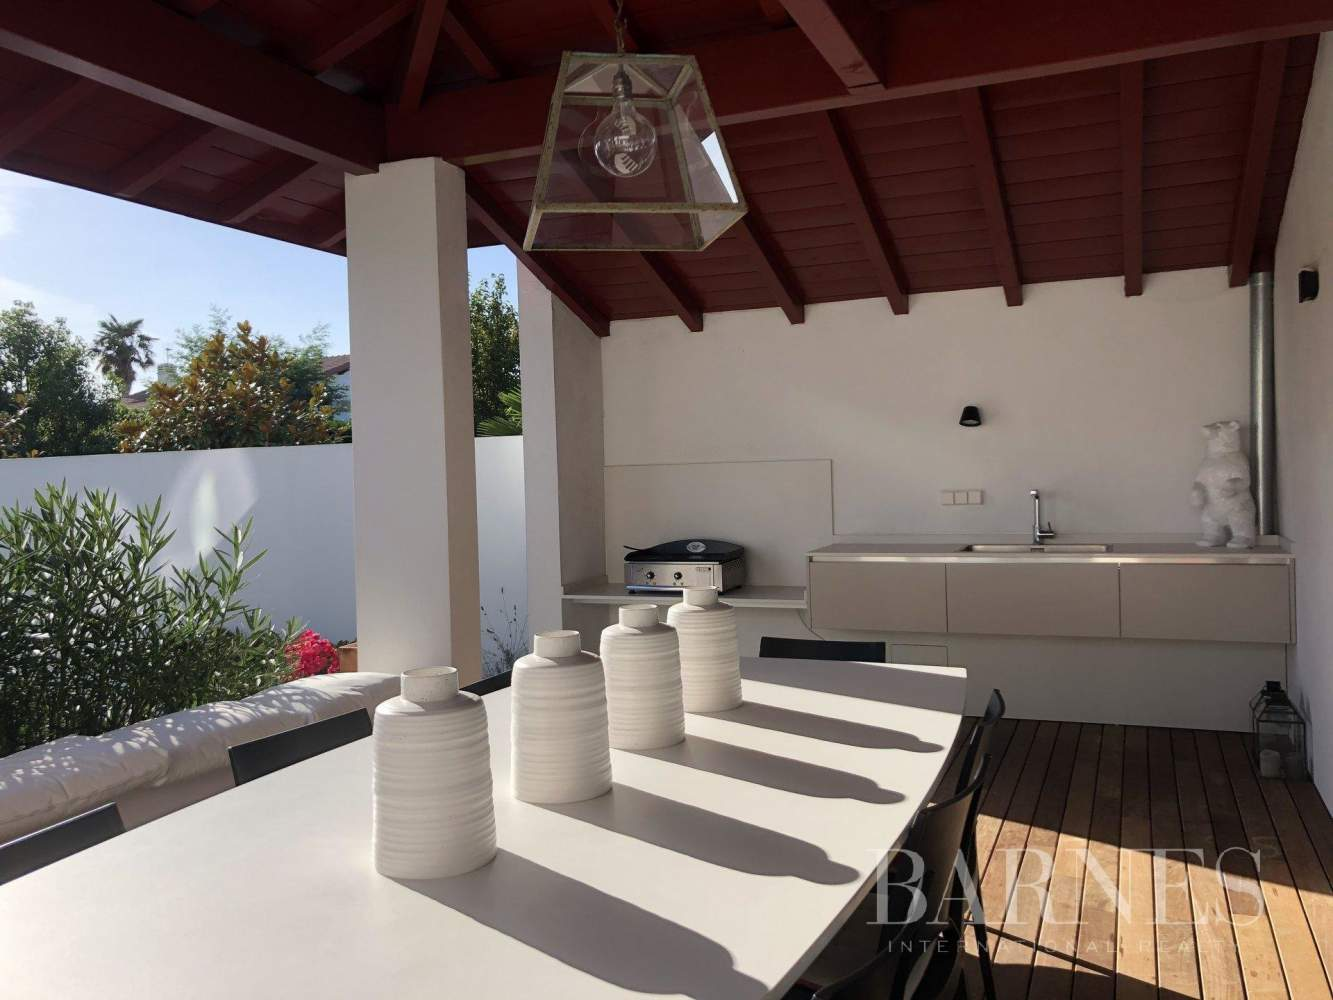 VERY NICE CONTEMPORARY HOUSE, 10 MINUTES WALK FROM THE BEACH OF SAINT JEAN DE LUZ AND FROM THE CENTER, 6 BEDROOMS, 14 PERSONS. HEATED SWIMMING POOL. picture 4